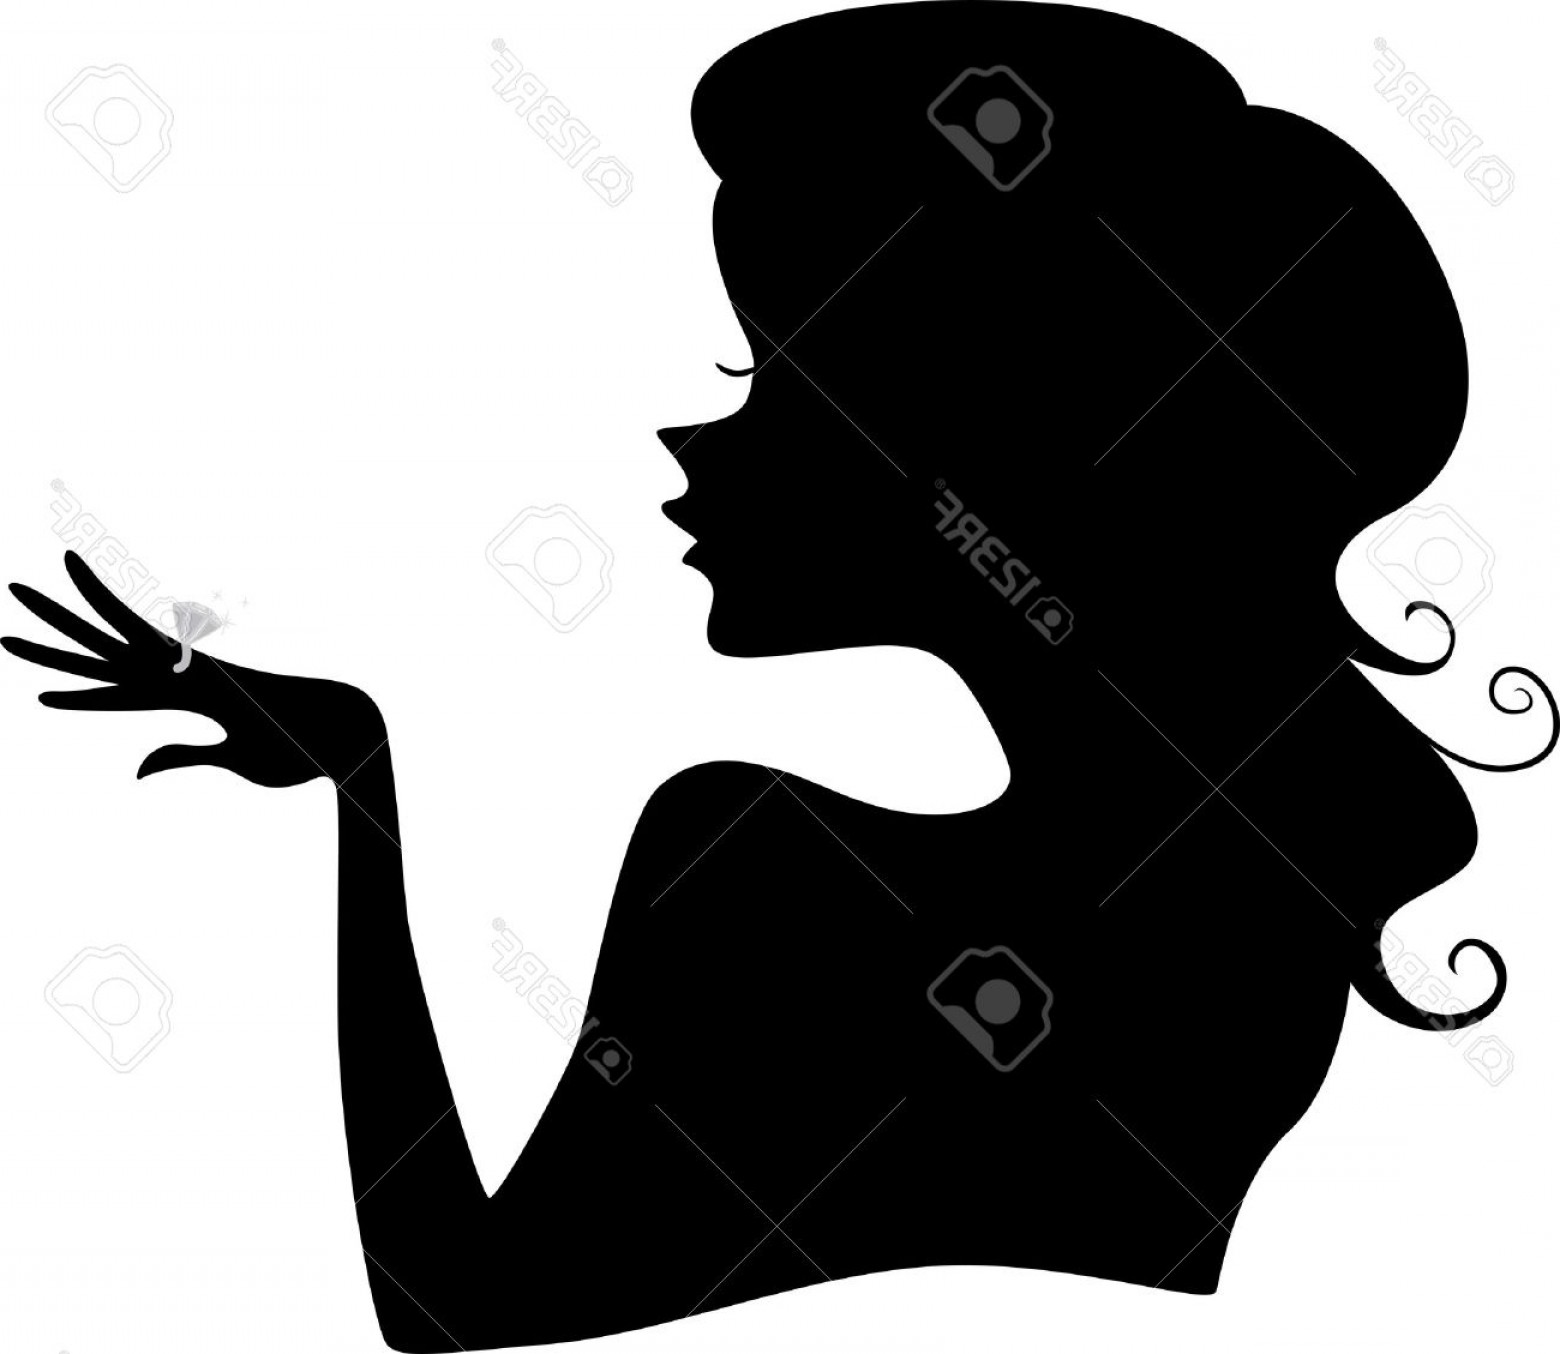 1560x1354 Photoillustration Of Girl S Silhouette Wearing A Diamond Ring